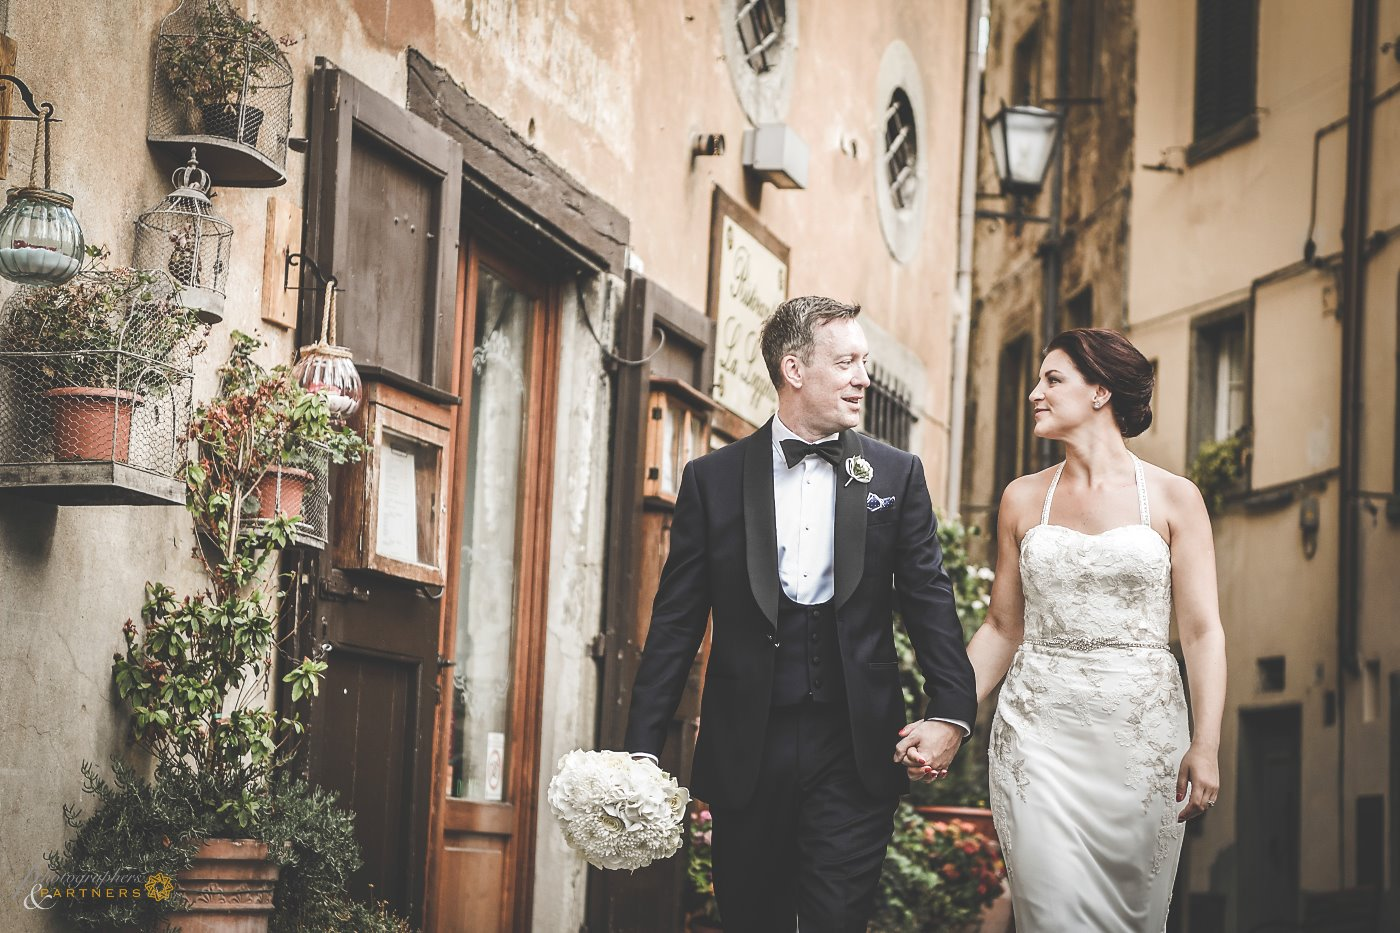 umbria_wedding_photographers_11.jpg